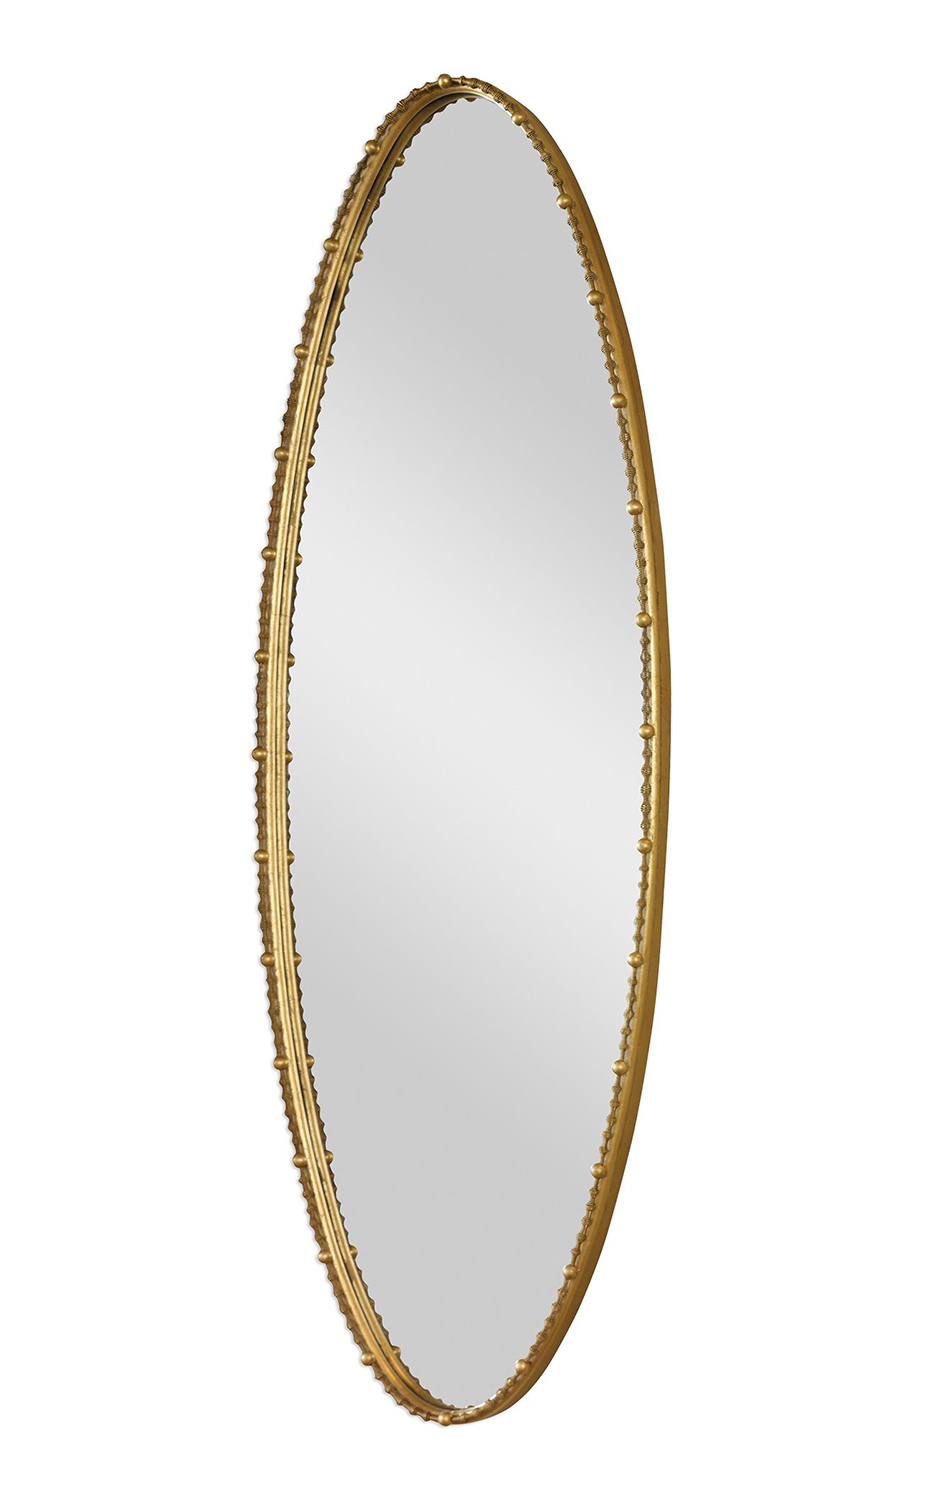 Uttermost Hadea Oval Mirror - Gold